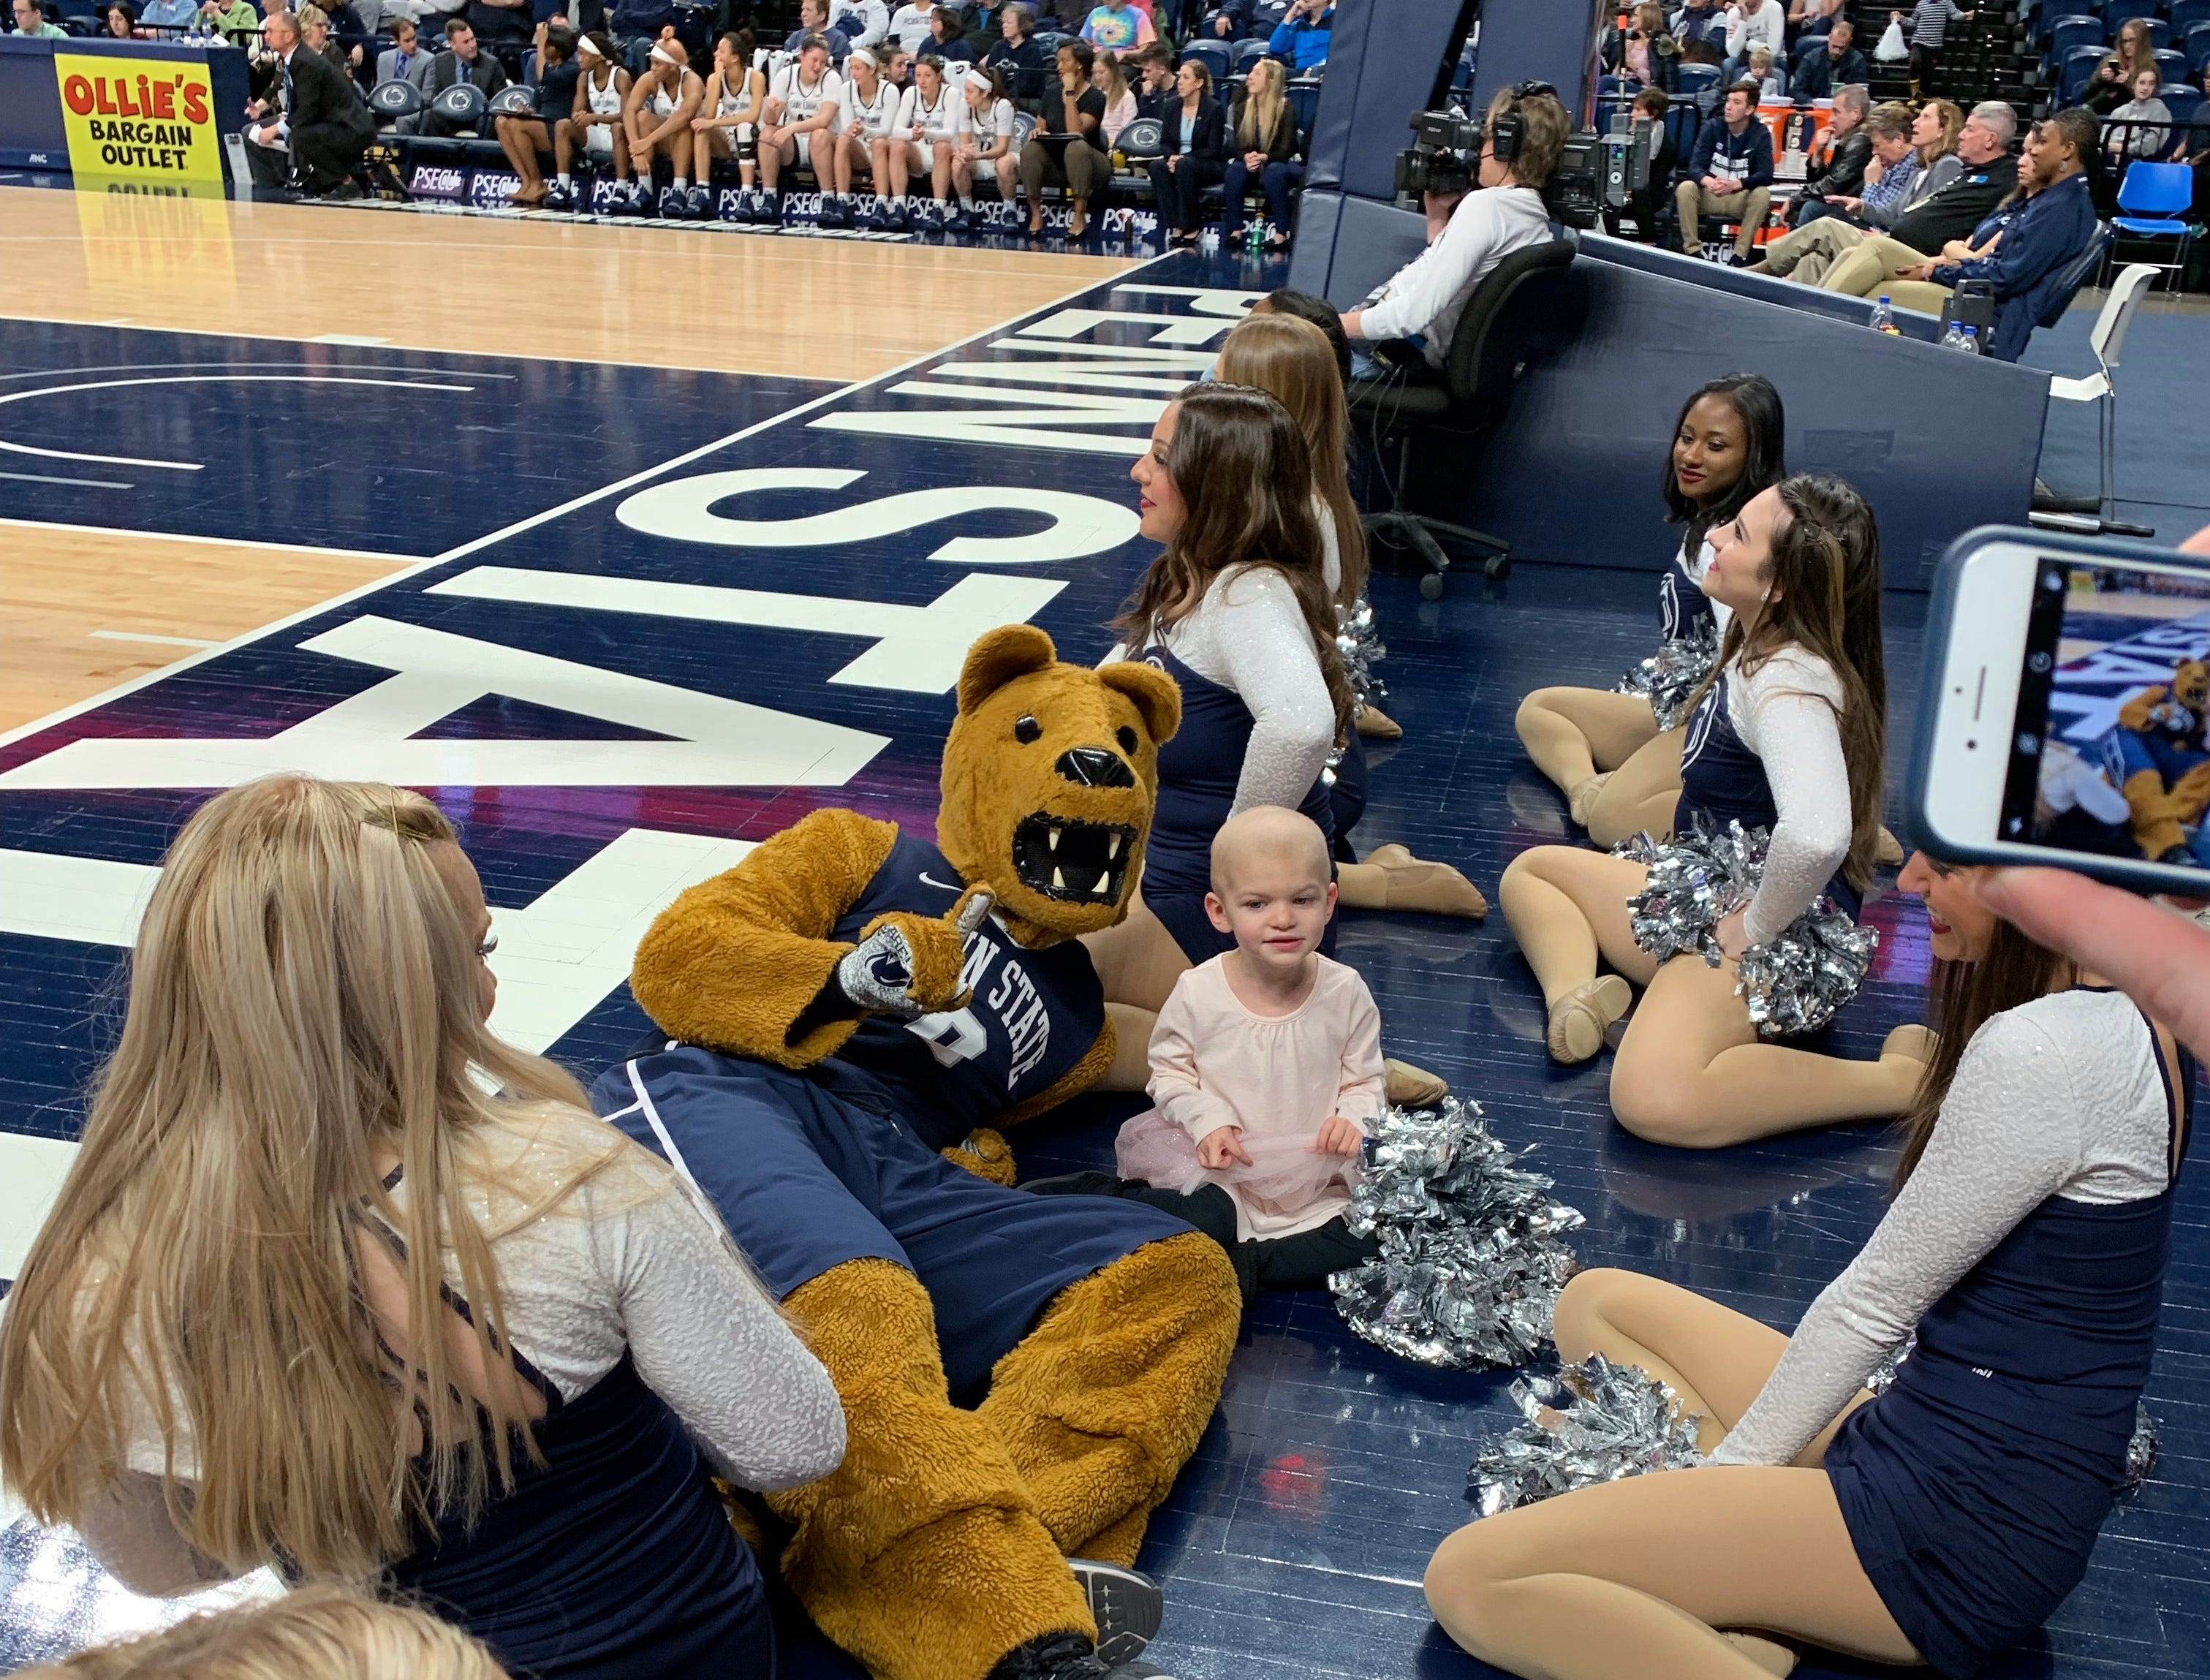 Shiloh poses with the Nittany Lion at a Penn State basketball game, January 12, 2019.